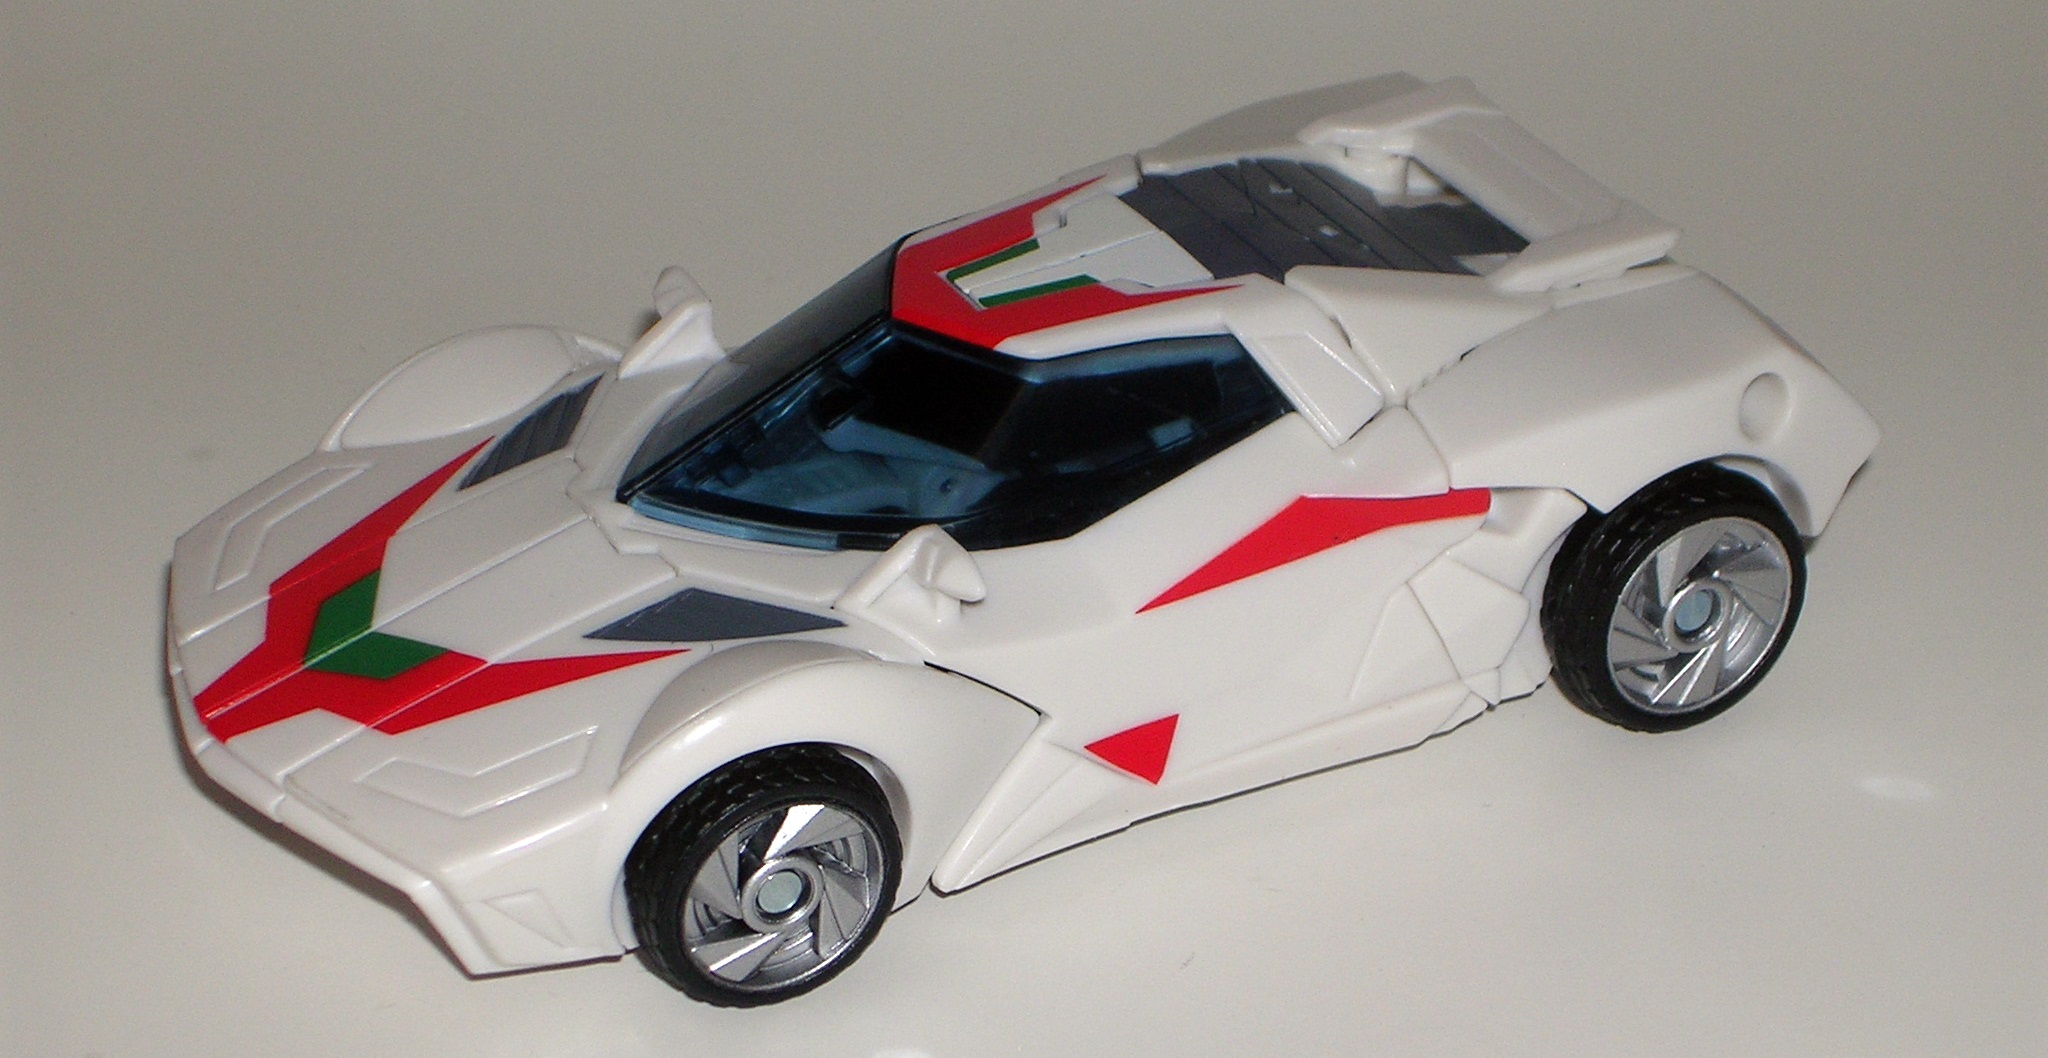 Transformers prime wheeljack car - photo#3